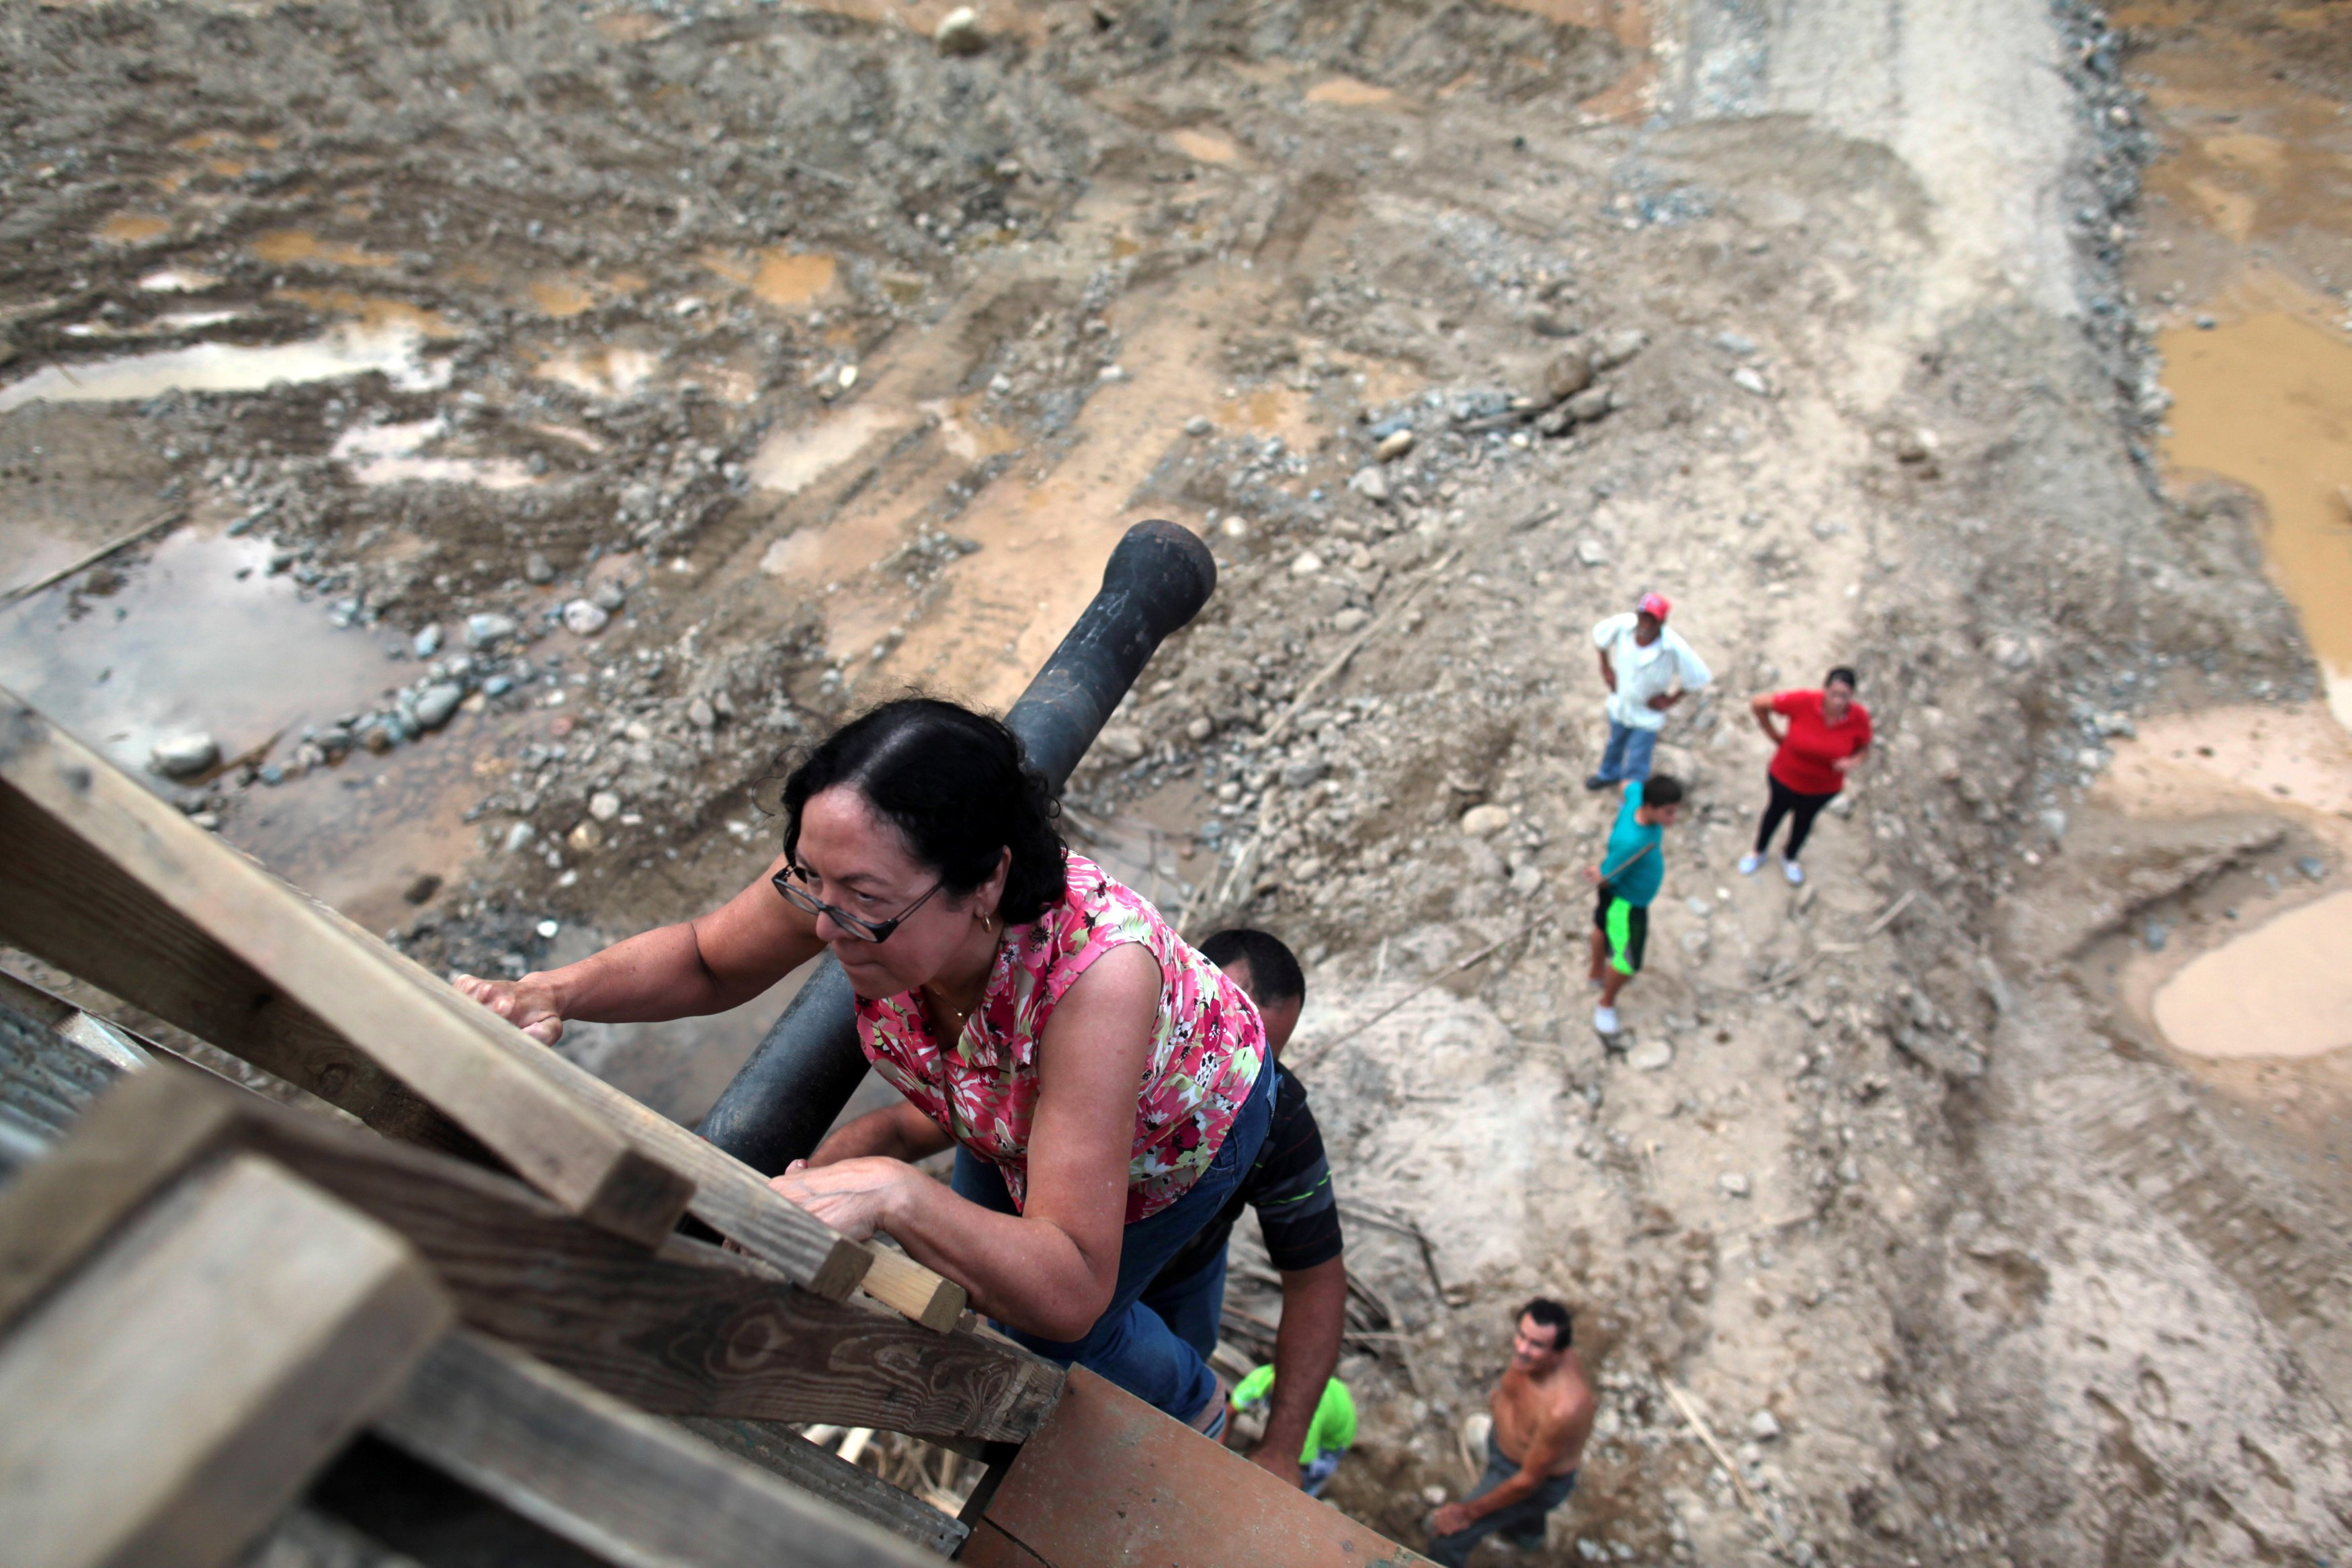 Image: People use a ladder to climb up a partially destroyed bridge after Hurricane Maria hit the area in September, in Utuado